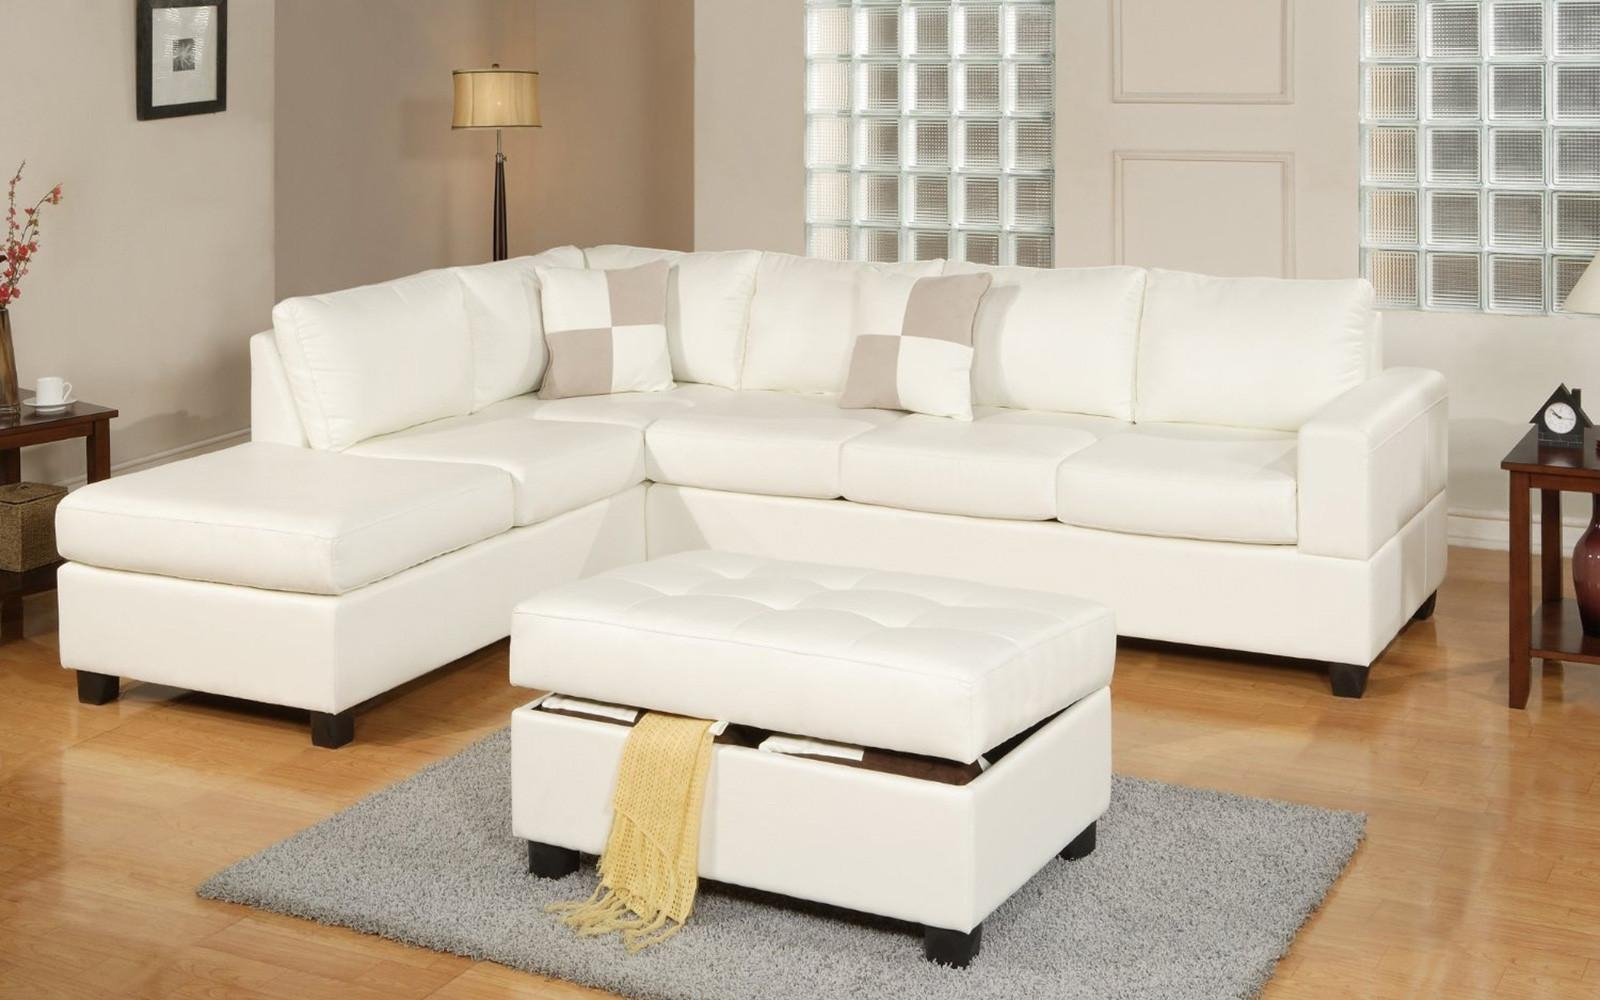 3 Piece Modern Reversible Tufted Bonded Leather Sectional Sofa With White Sectional Sofa For Sale (View 9 of 21)